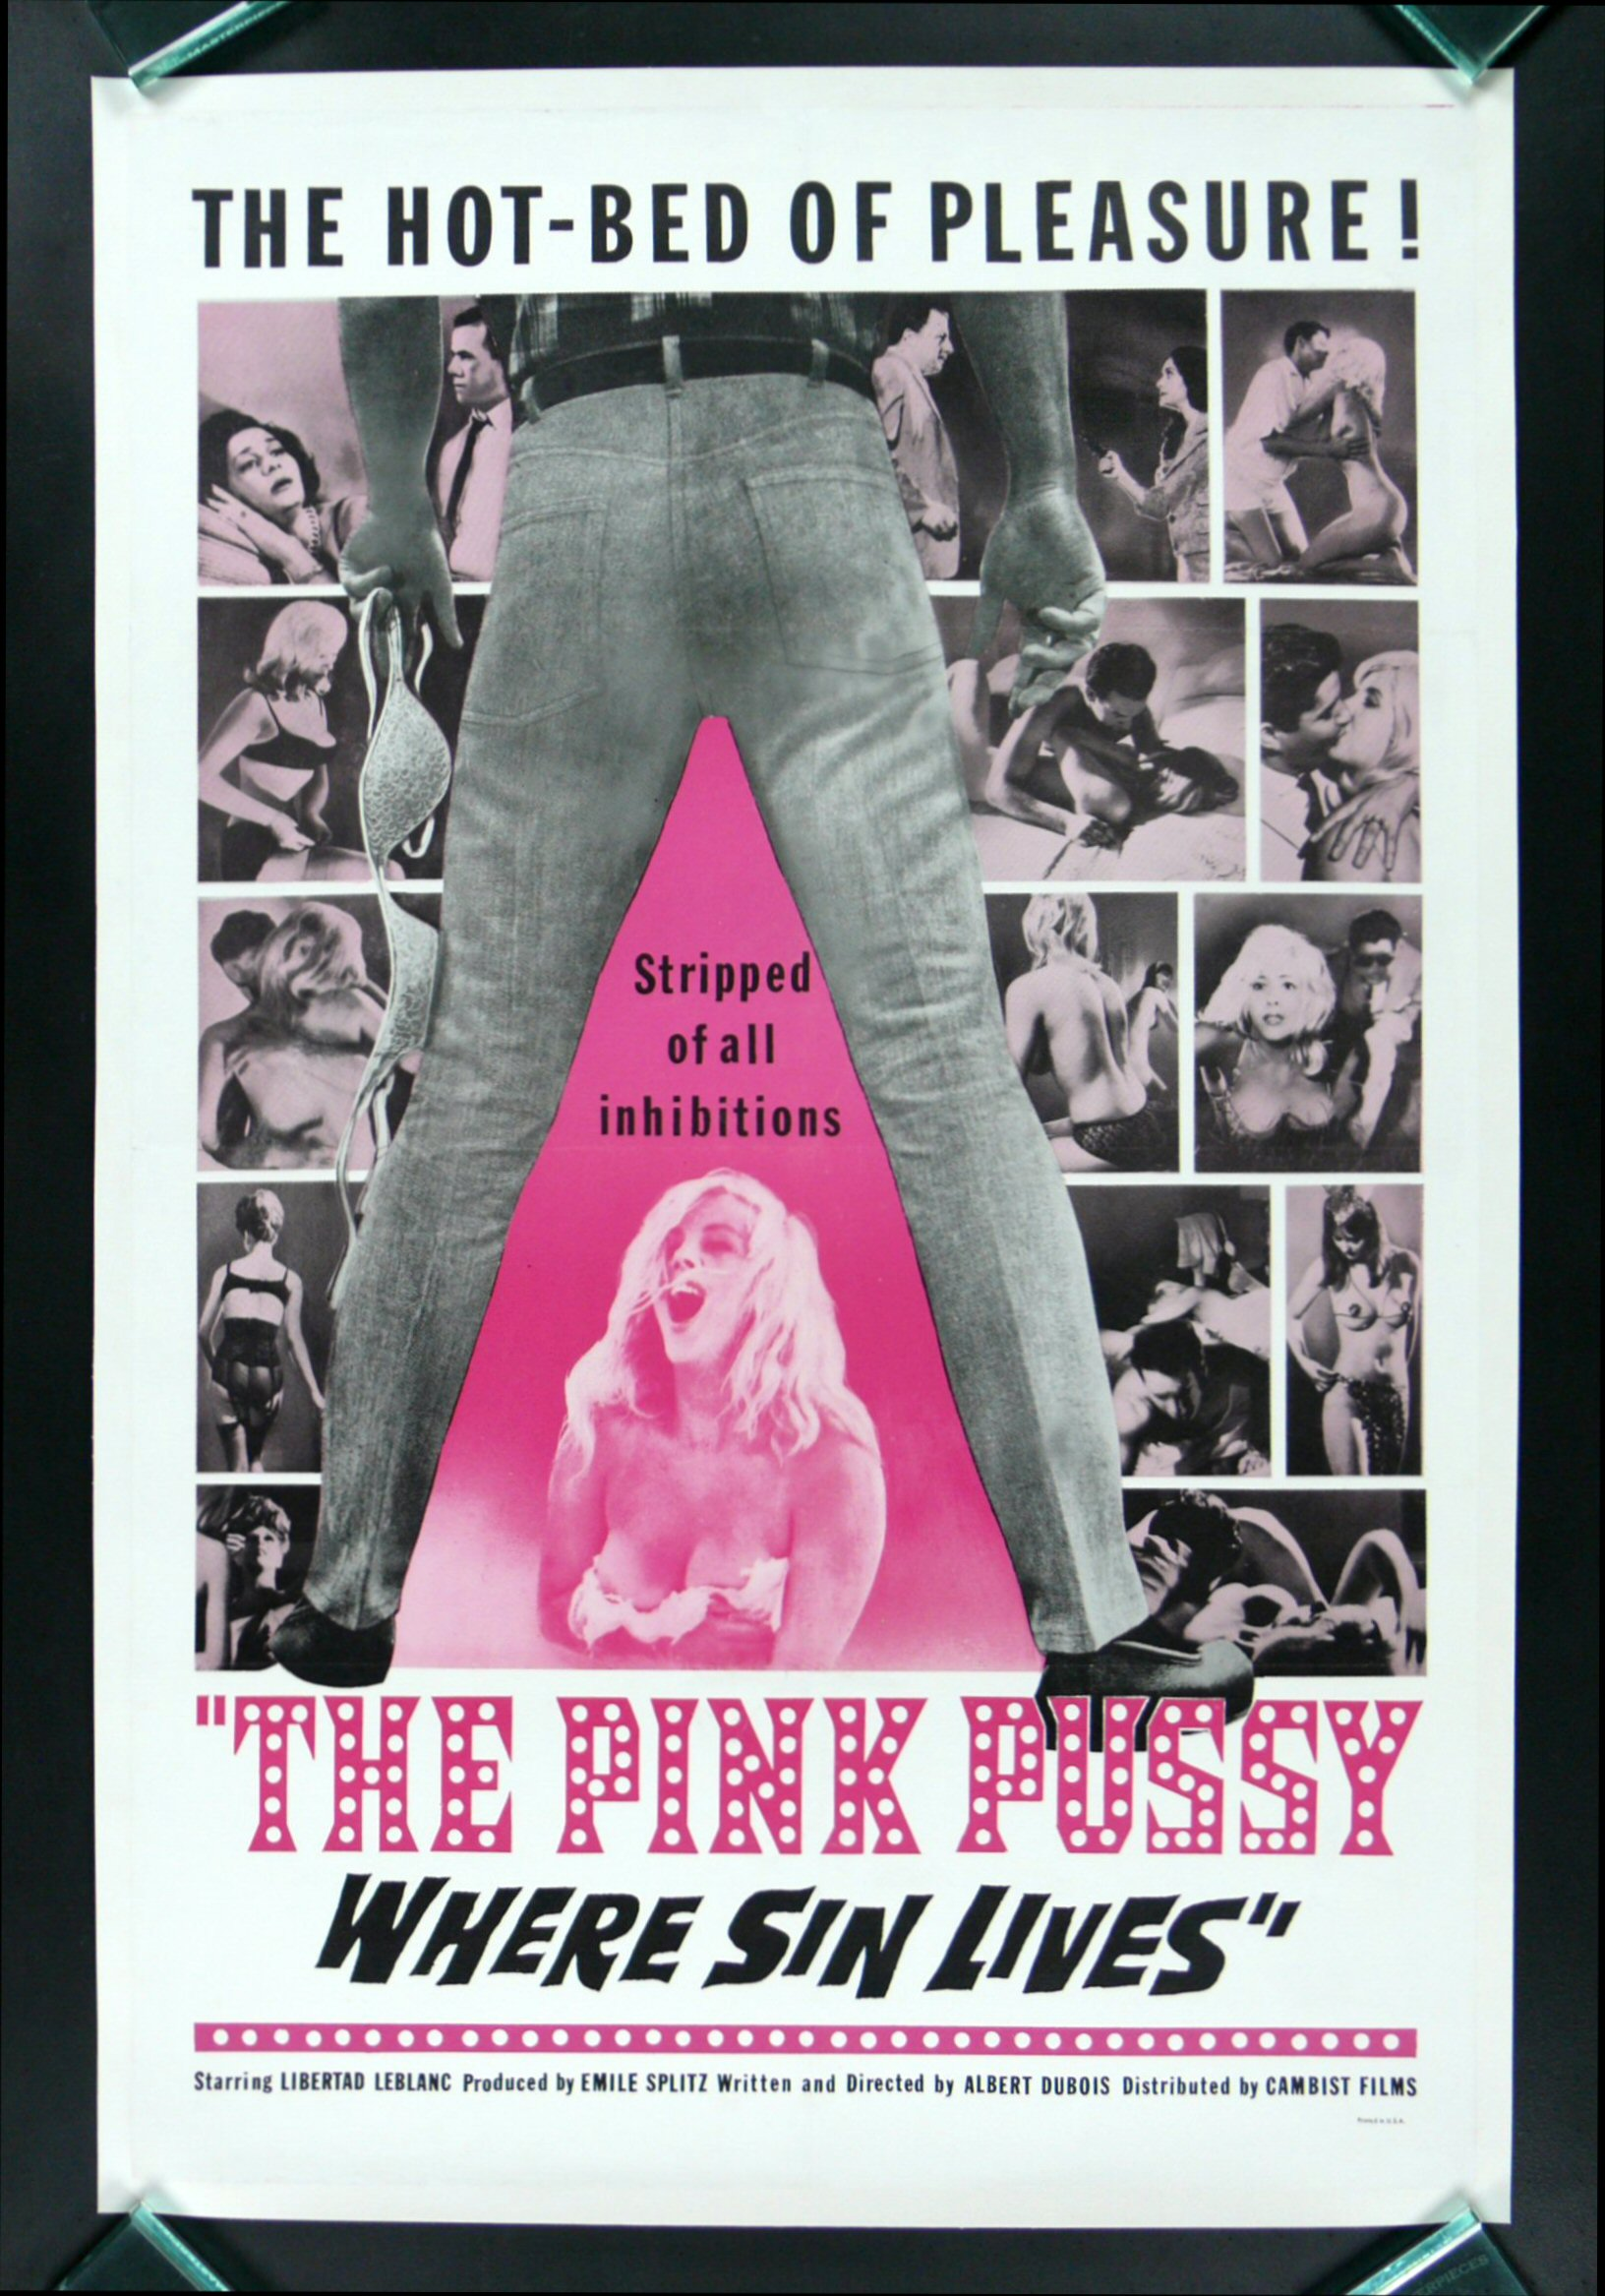 THE PINK PUSSY